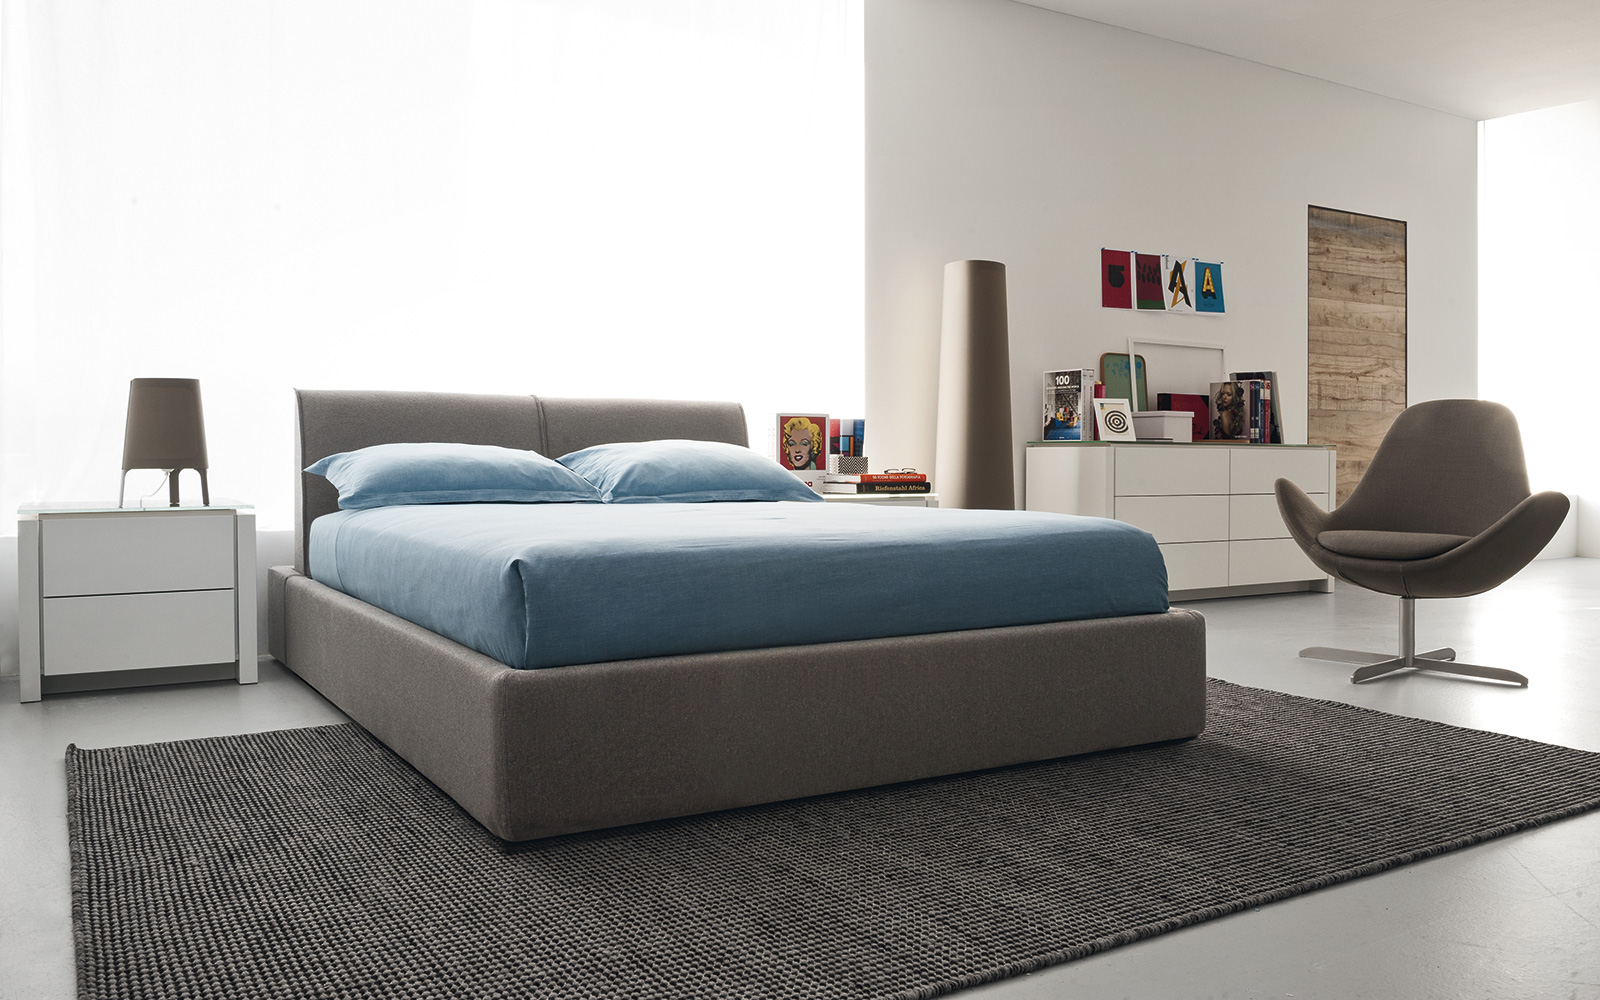 calligaris beds soothing slumber with ergonomic invigoration  - alameda queen bed